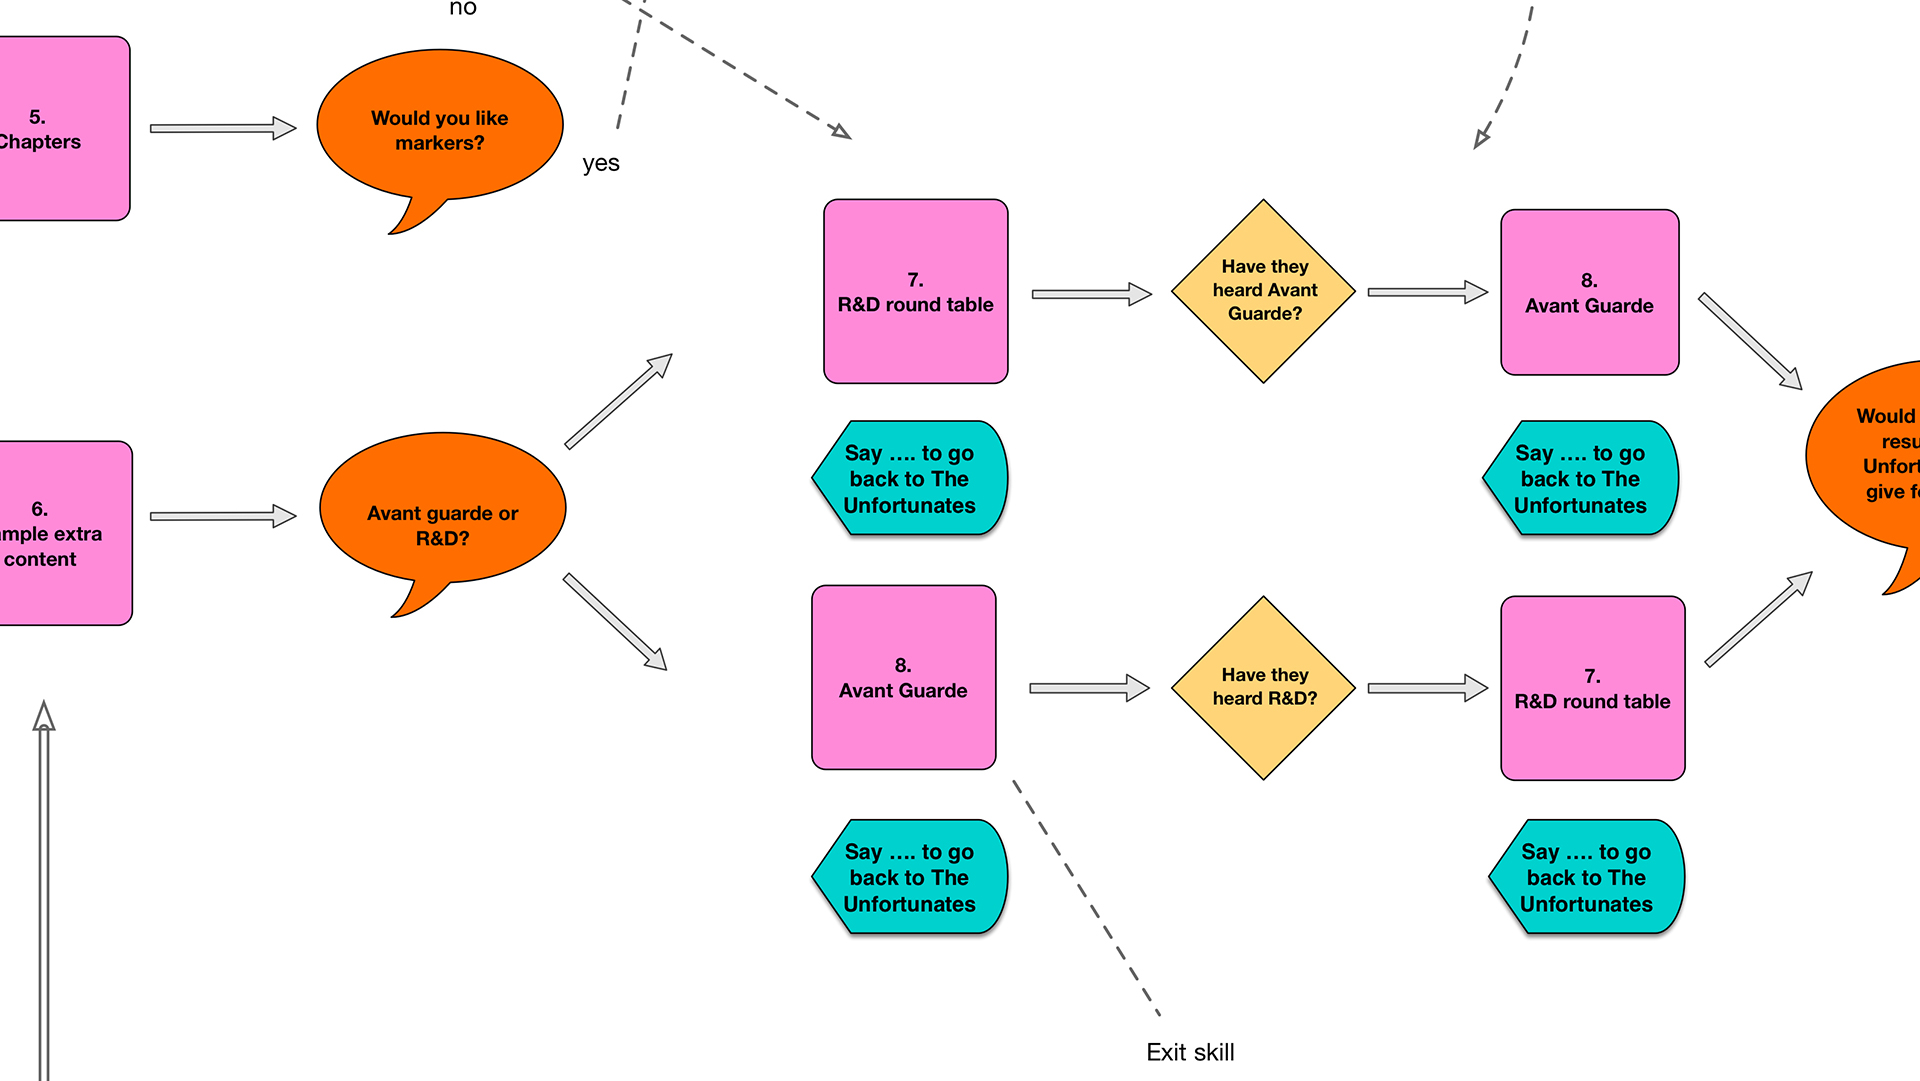 Excerpt from a flow diagram showing the user experience flow in The Unfortunates - click for a larger version.